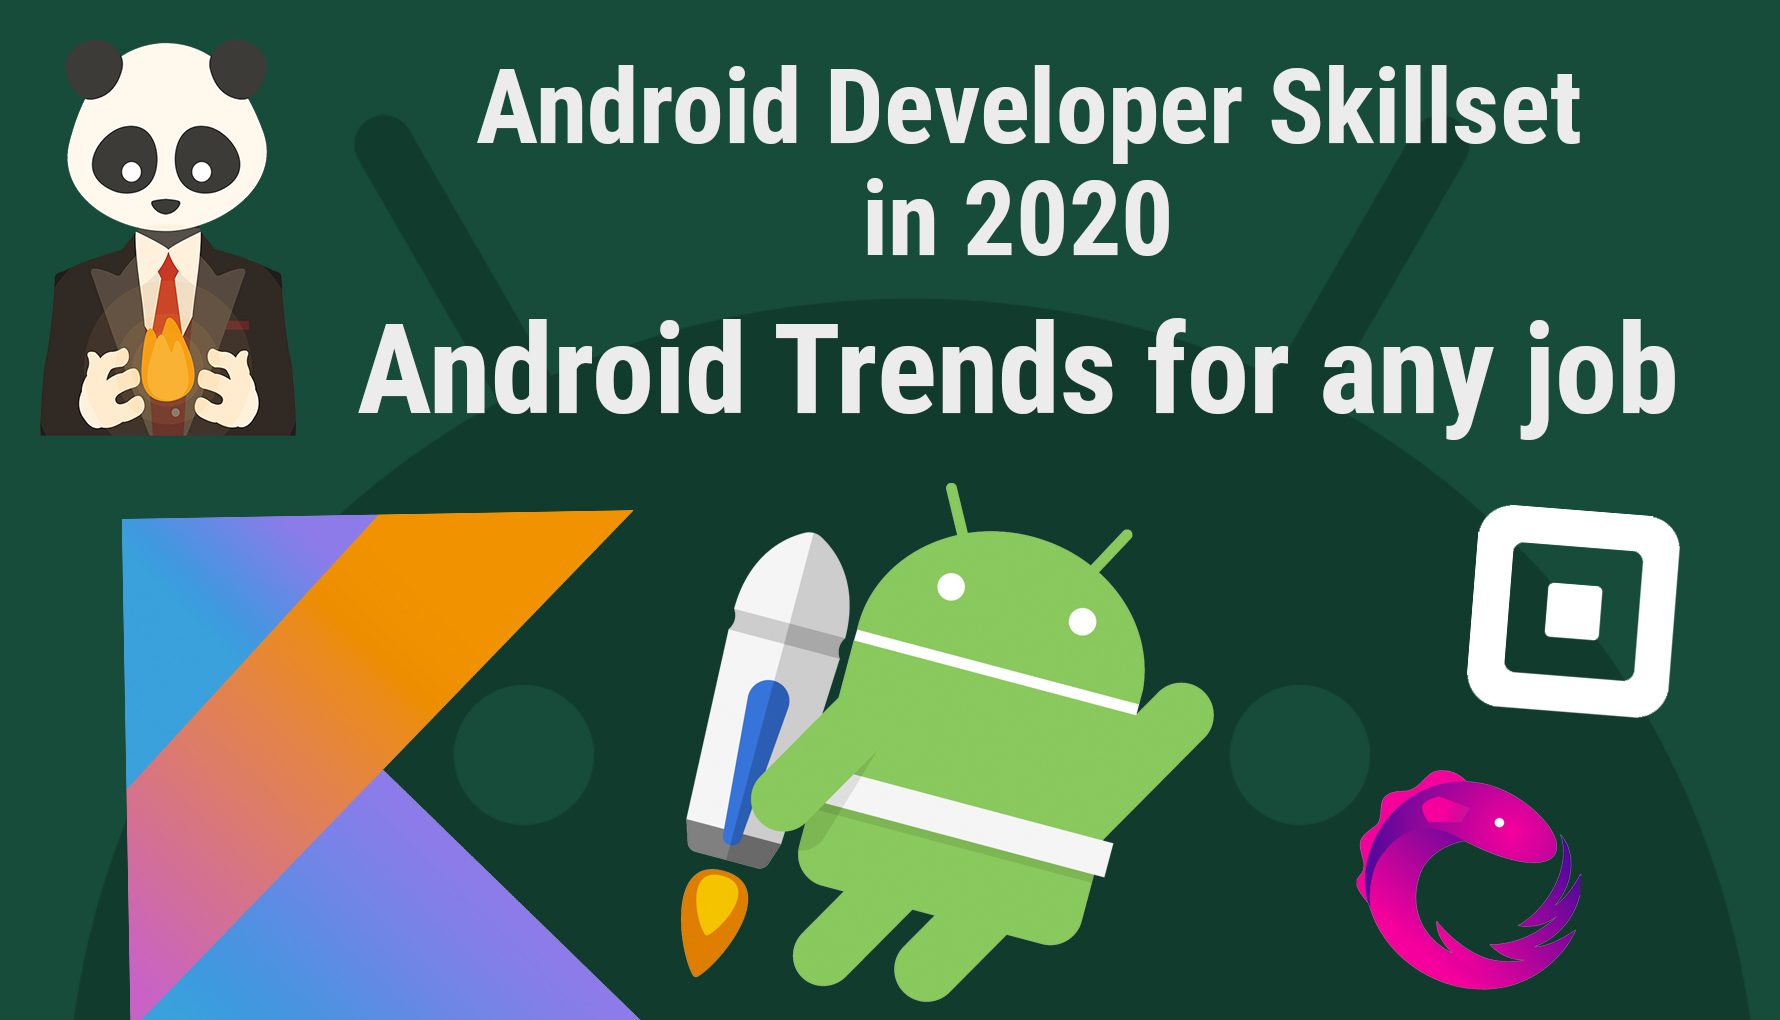 Android Developer 2020 Skillset – What you need to know to get any job / Android Trends